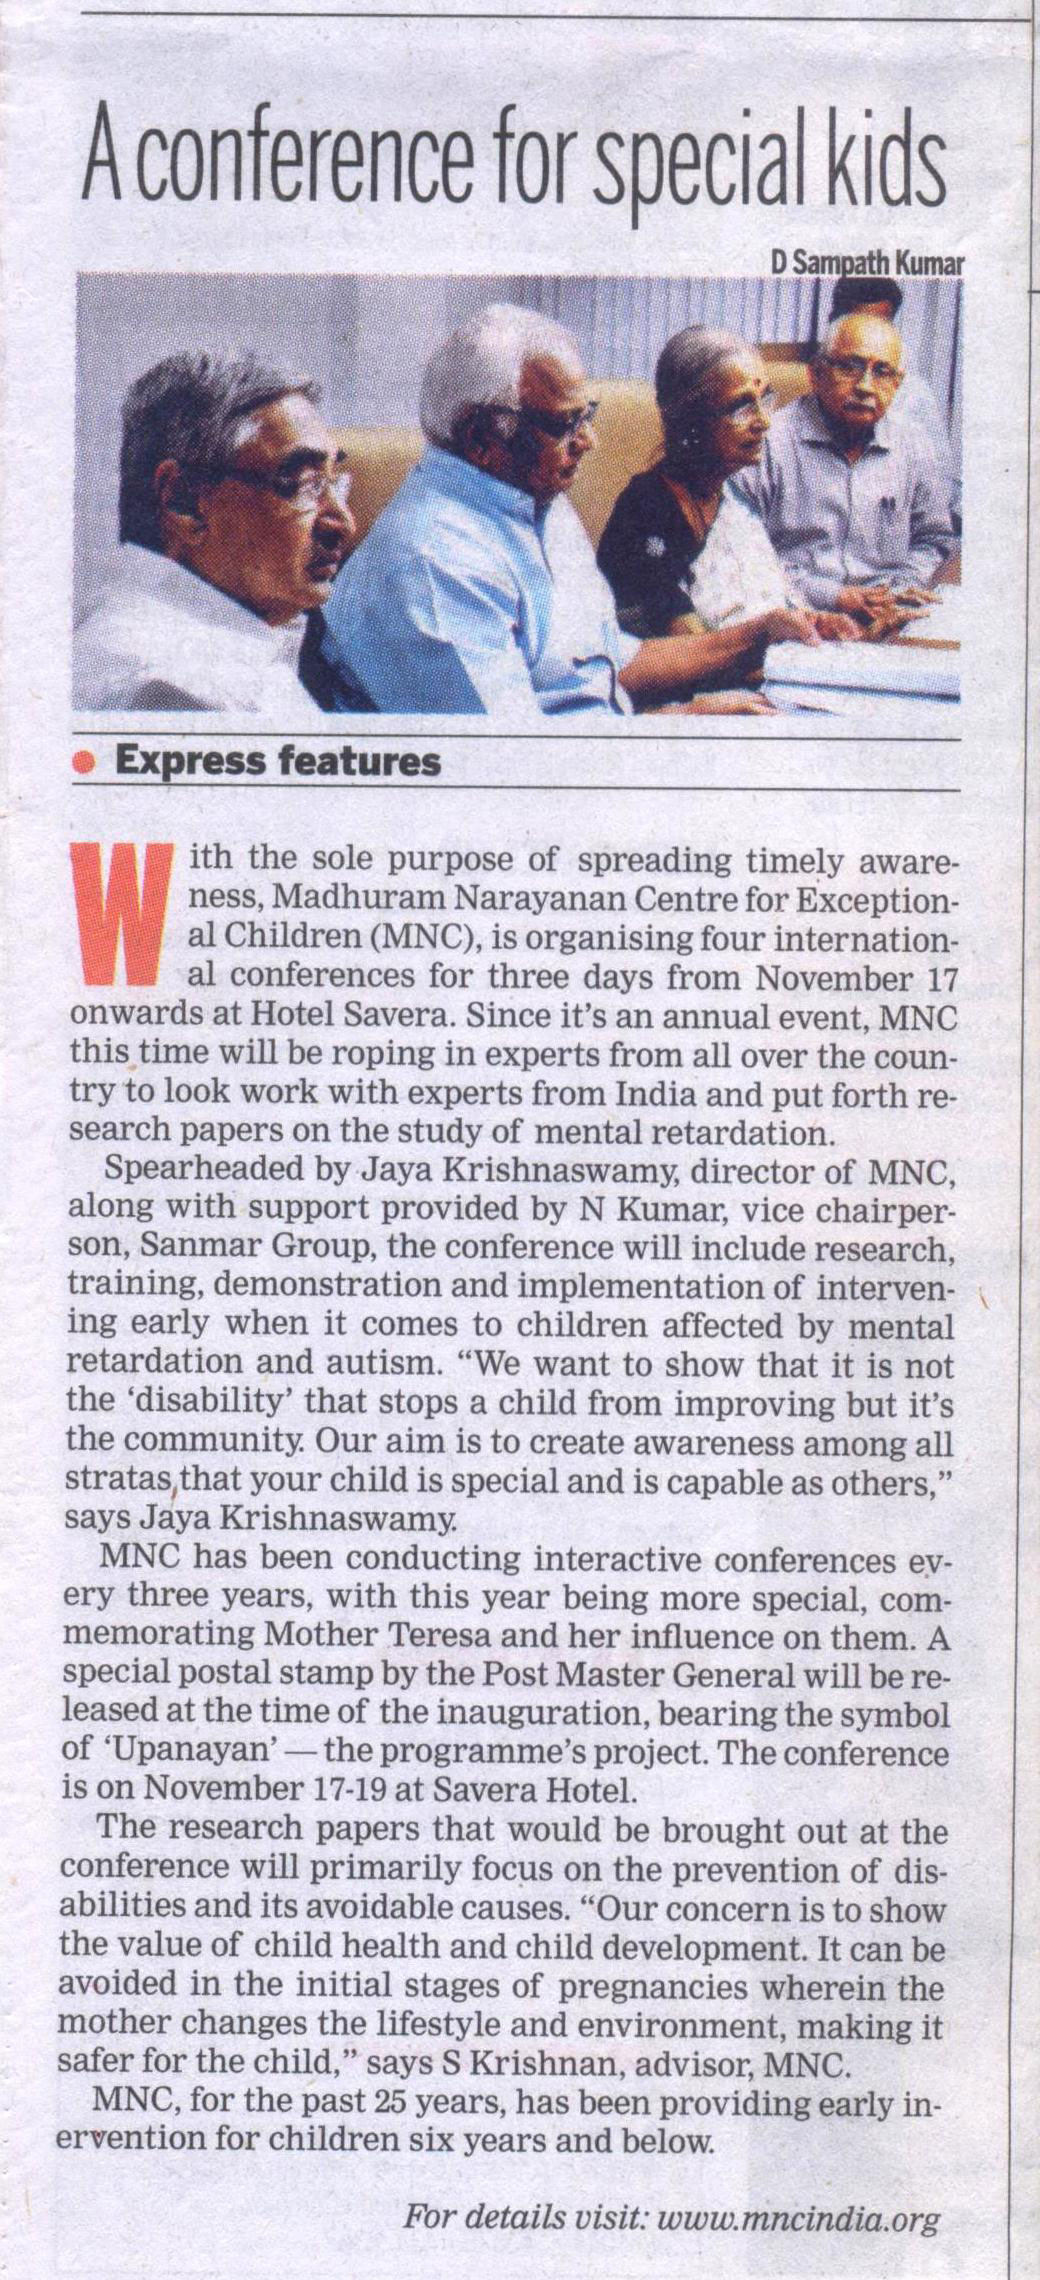 The New Indian Express - 15th November 2016